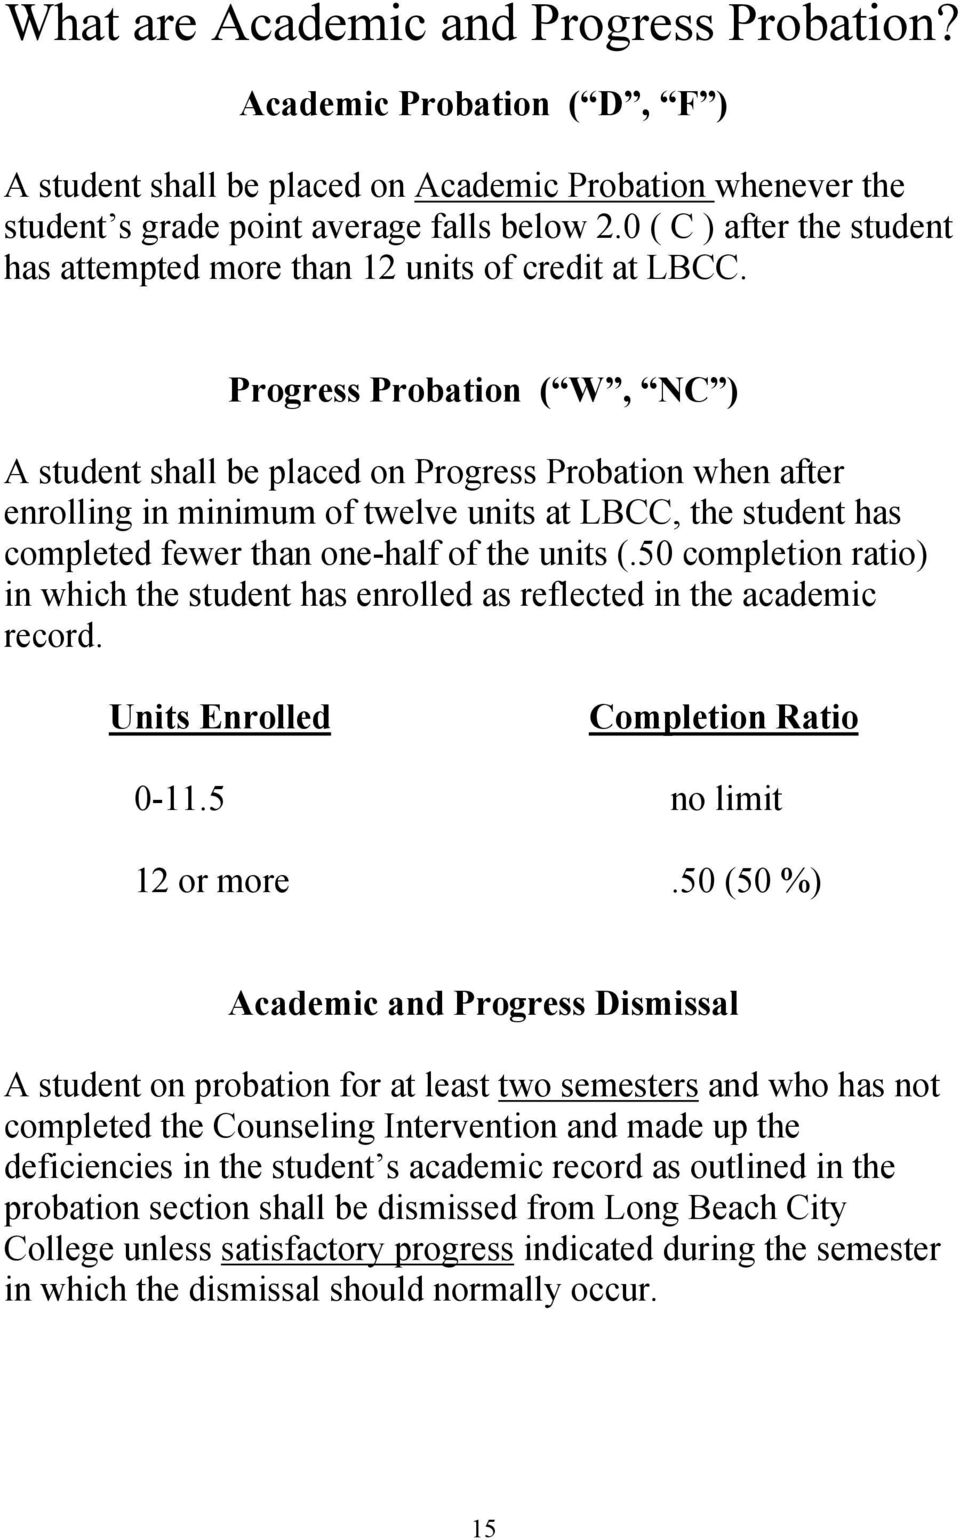 Progress Probation ( W, NC ) A student shall be placed on Progress Probation when after enrolling in minimum of twelve units at LBCC, the student has completed fewer than one-half of the units (.